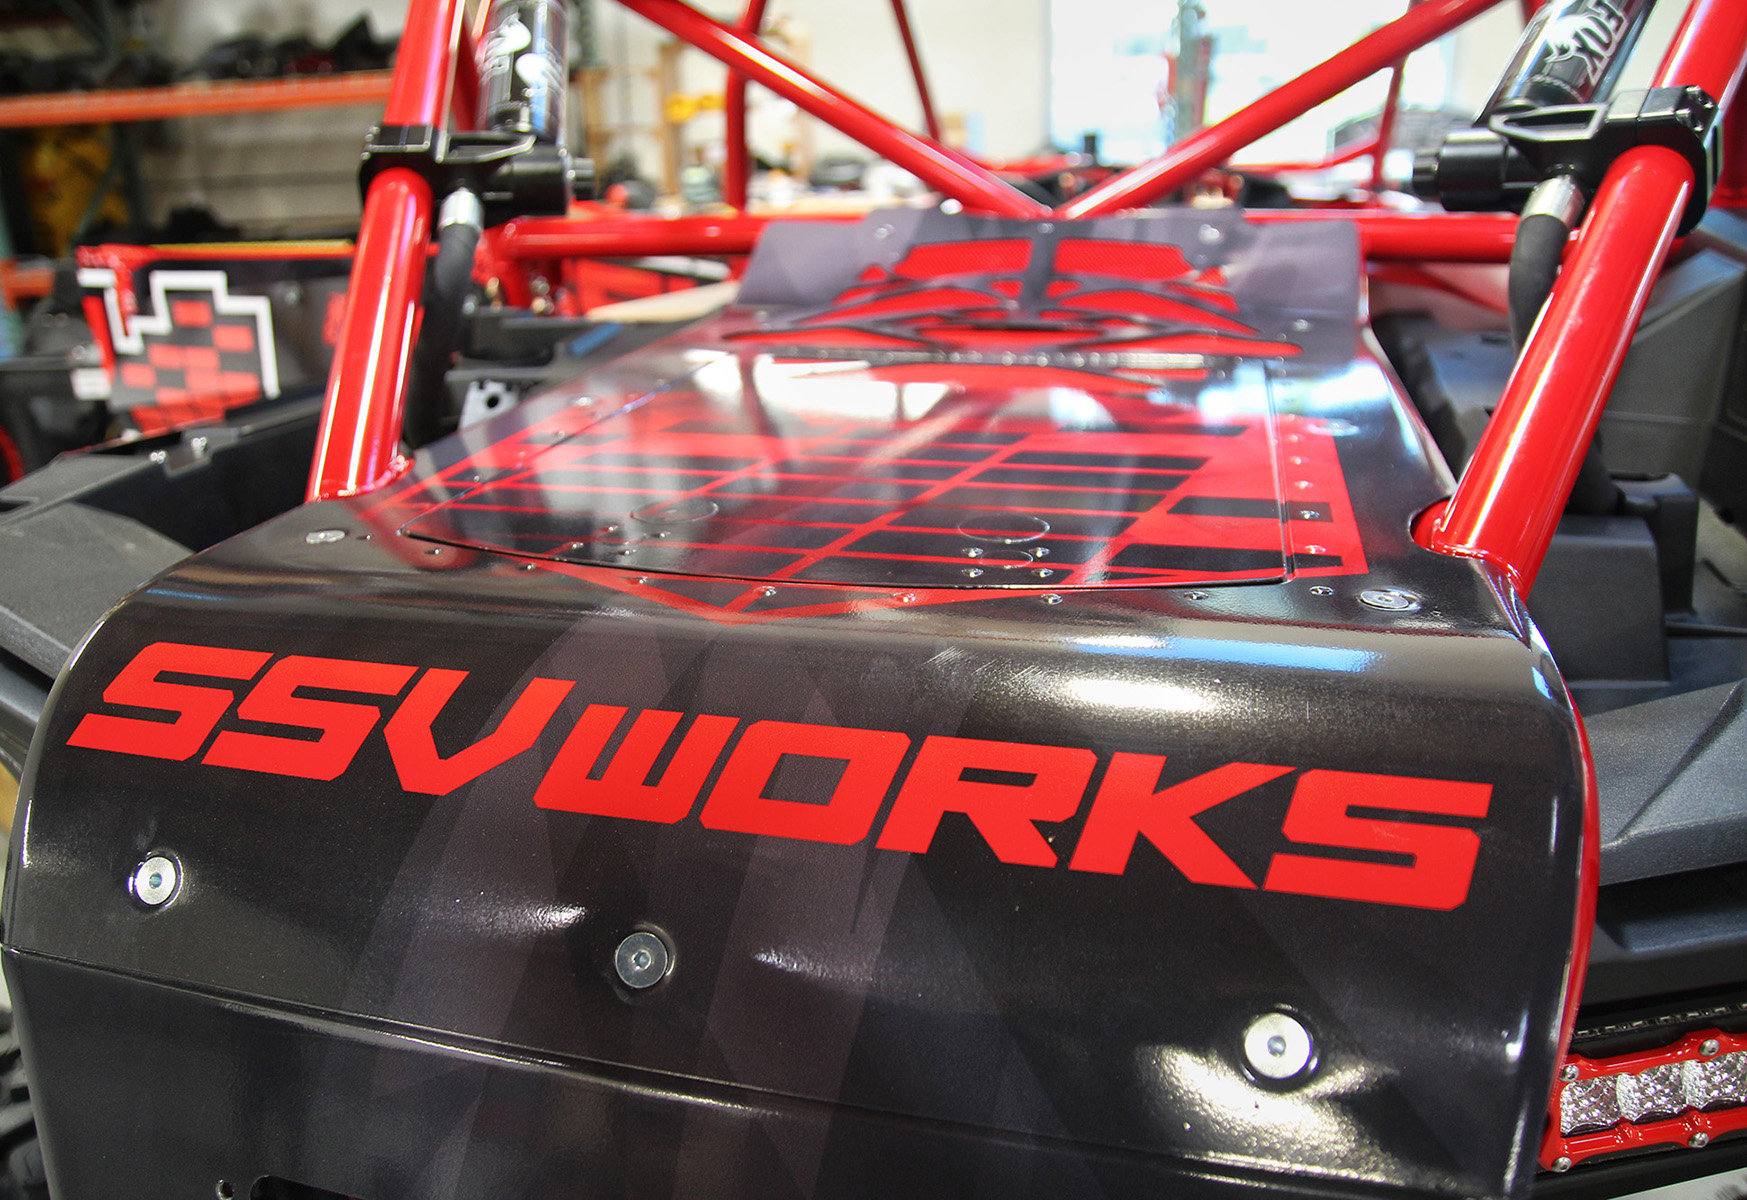 Kicker 10 Subwoofers Ssv Works' Incredible 2017 Rzr Xp4 Turbo Build: The